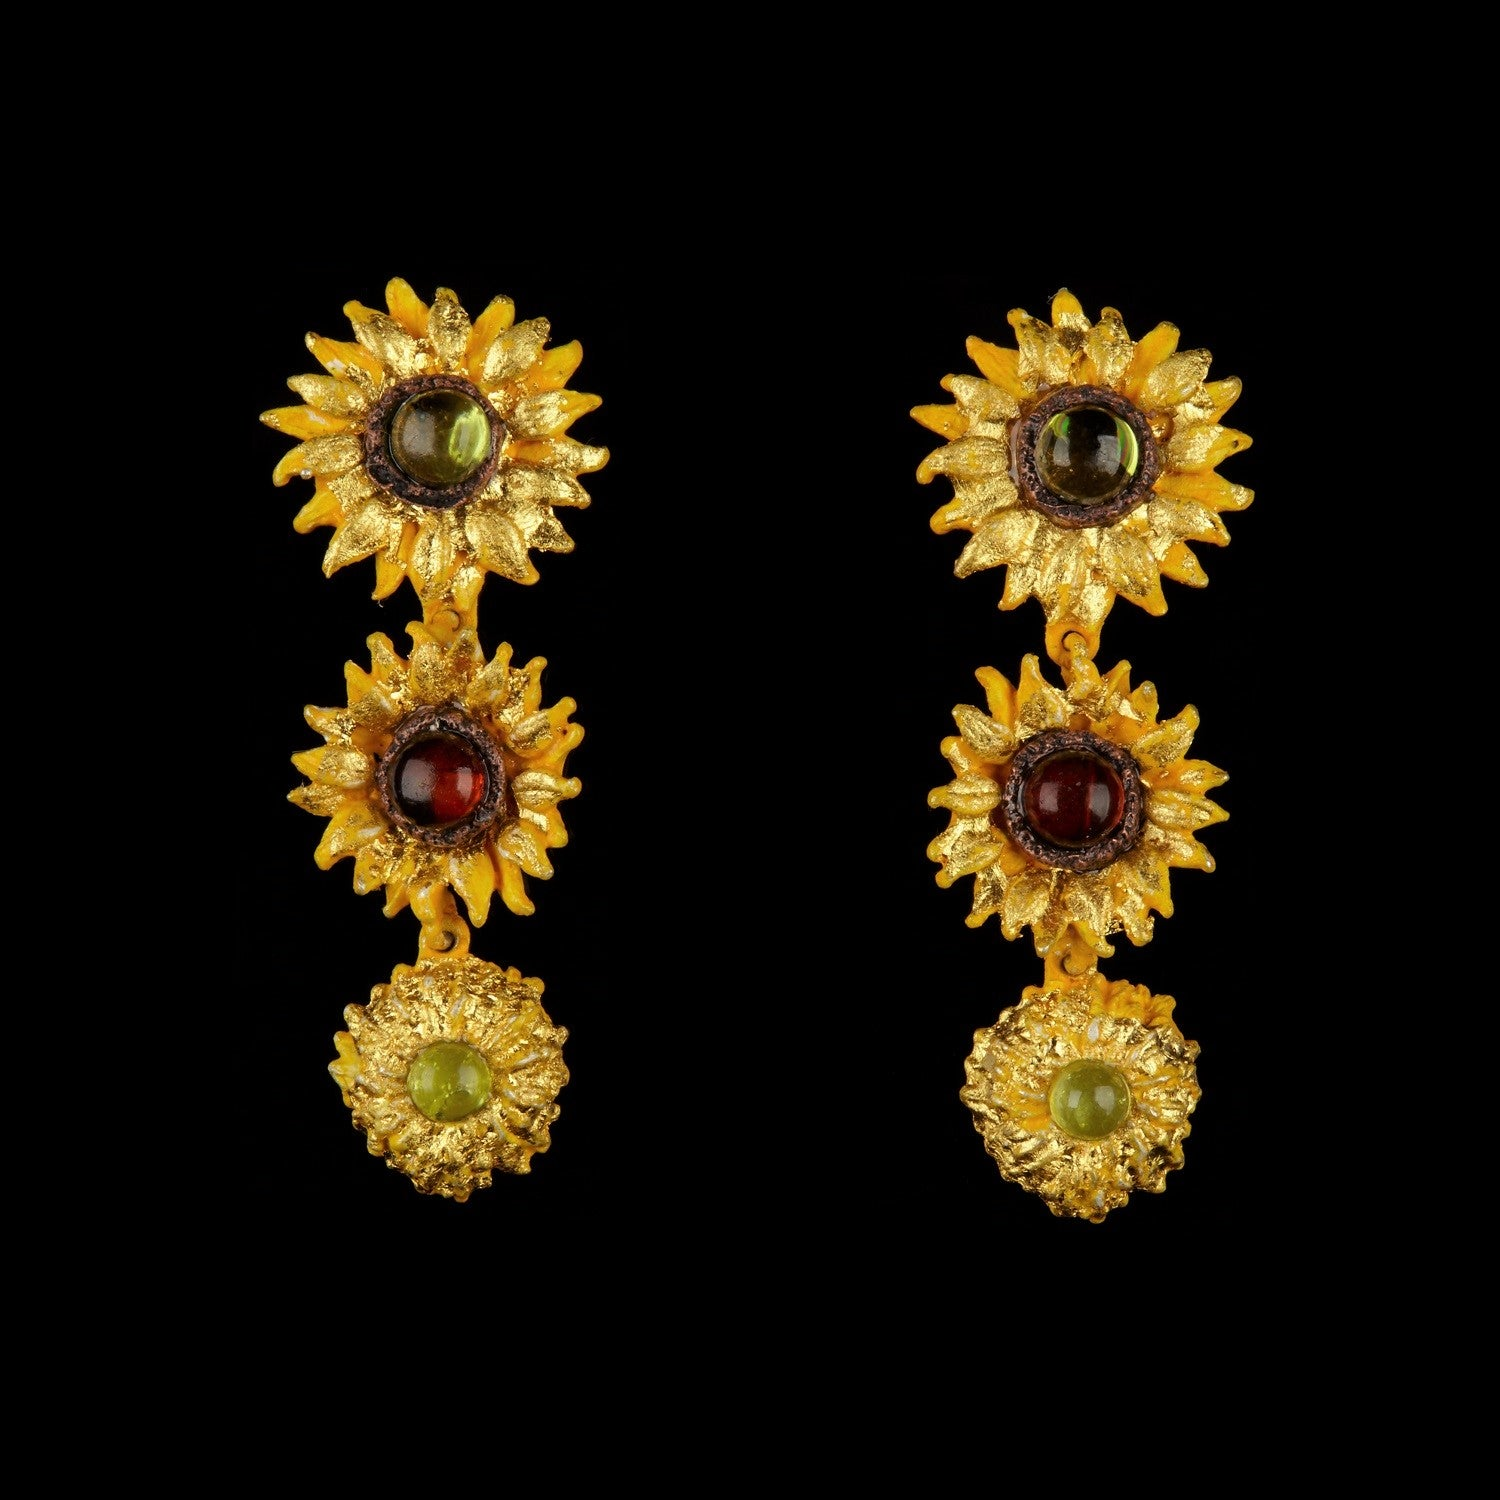 Van Gogh Sunflower Earrings - Drop Post